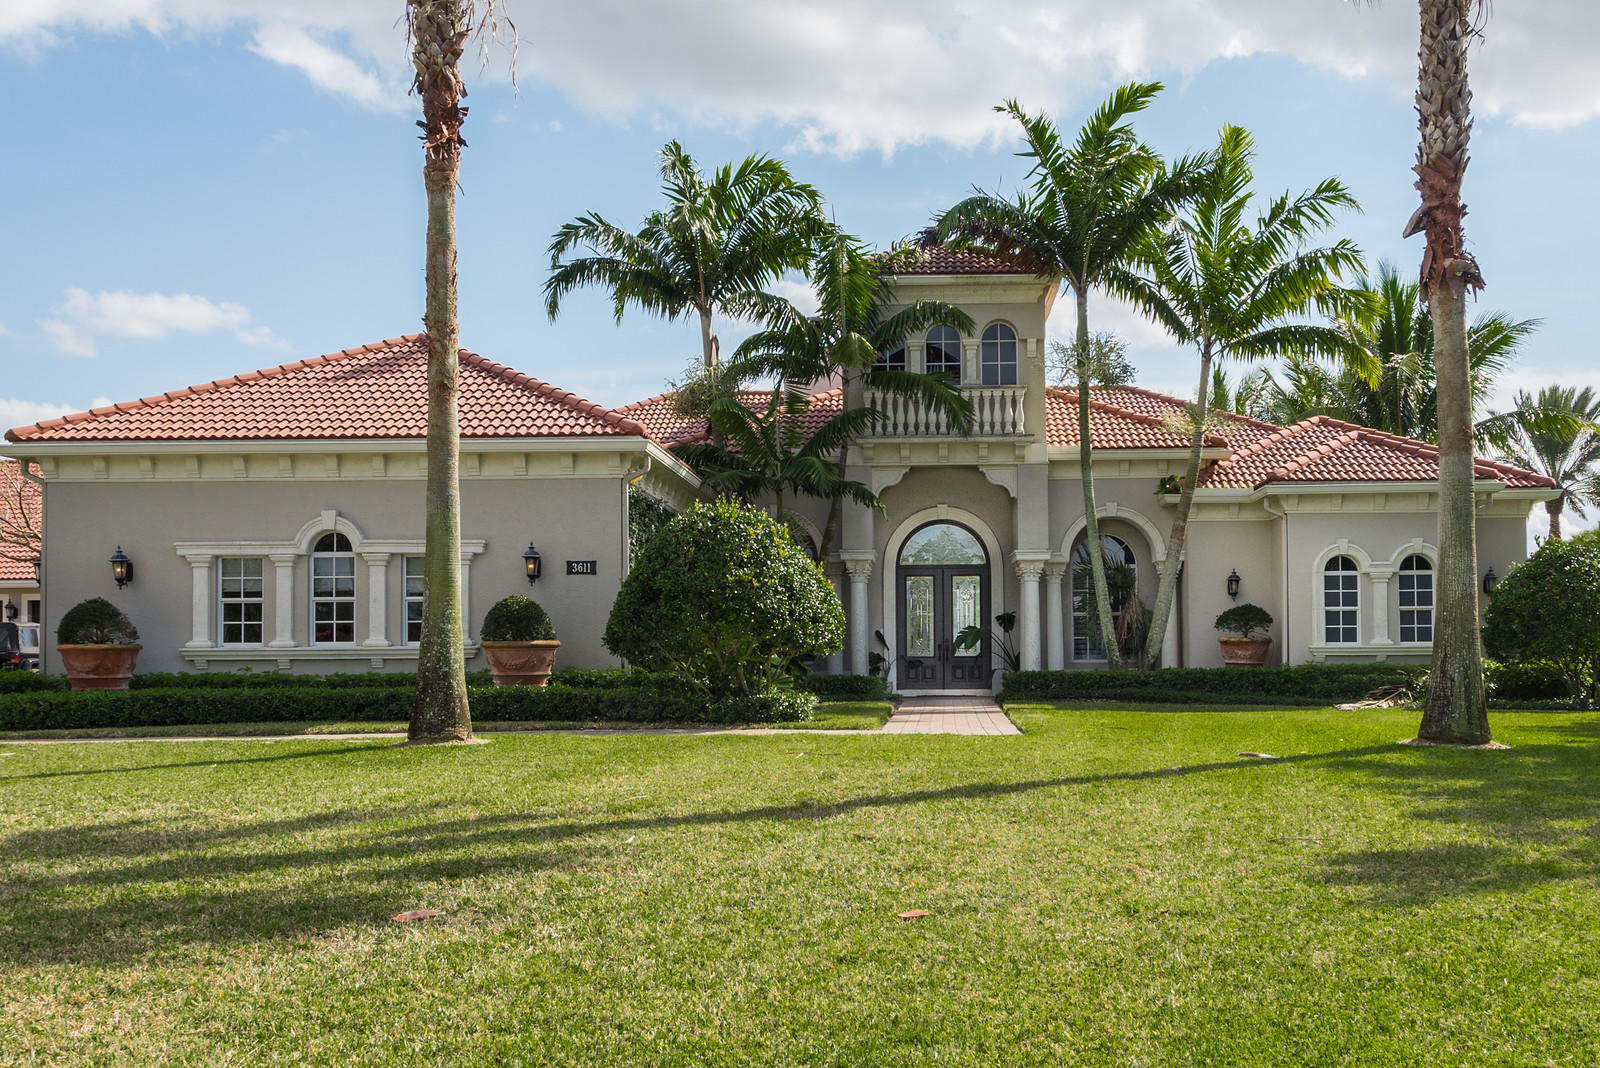 3611 Aiken Court, Wellington, Florida 33414, 5 Bedrooms Bedrooms, ,6 BathroomsBathrooms,Single Family,For Sale,Aiken,RX-10496196